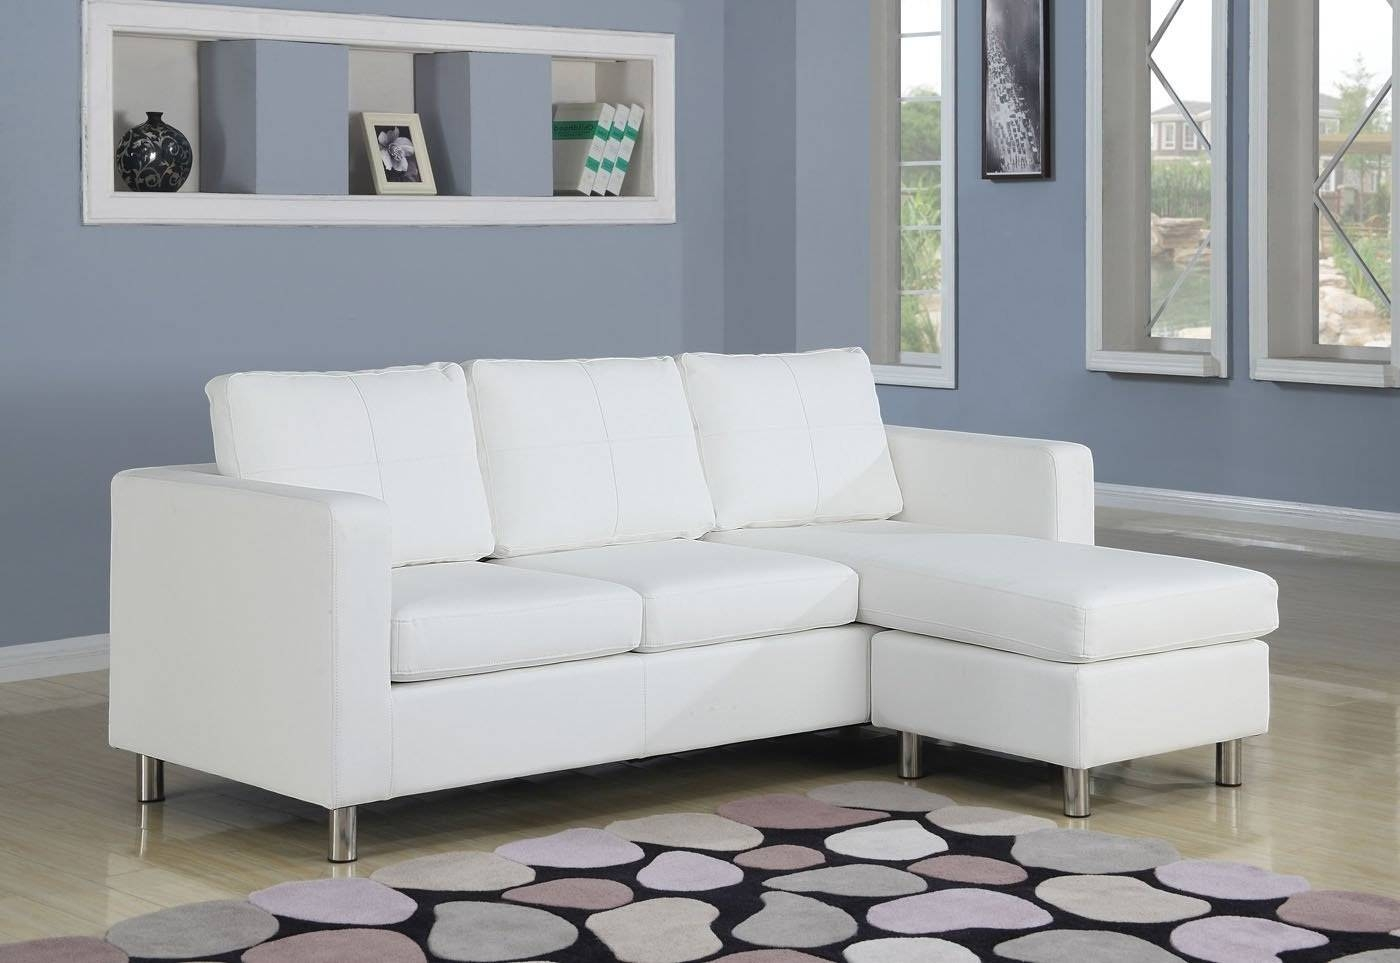 Small Sectional Sofa With Chaise: Perfect Choice For A Small Space within Modern Small Sectional Sofas (Image 12 of 15)